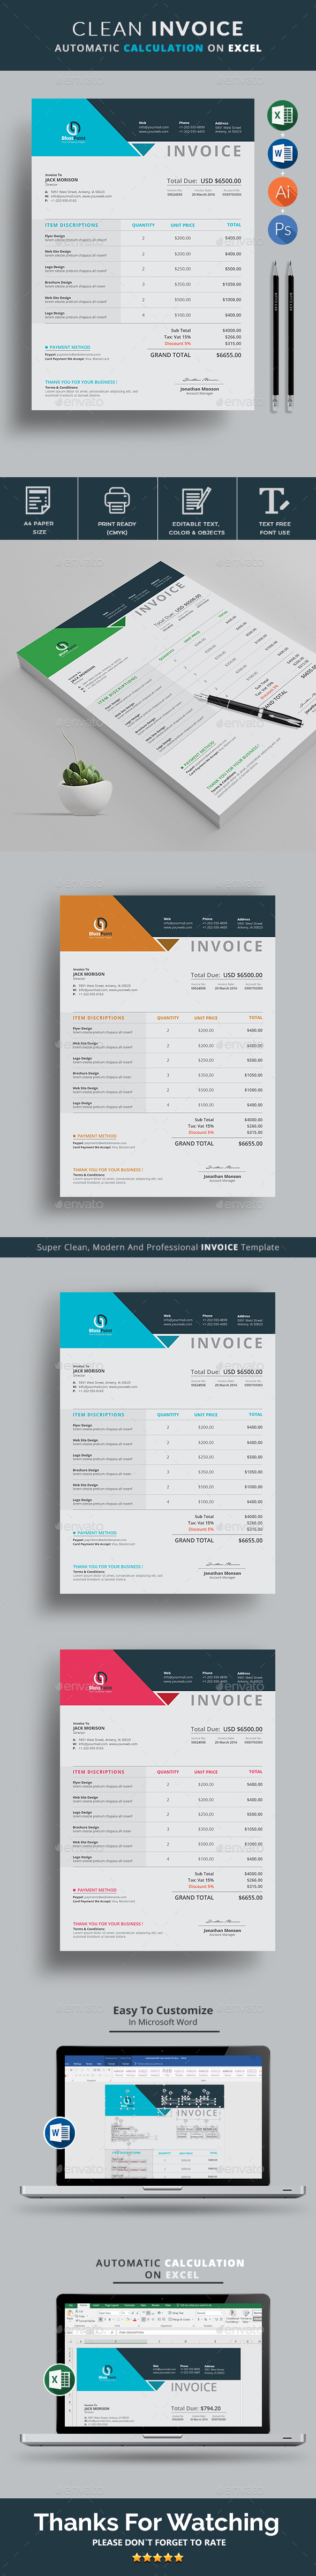 What Is An Invoice Price On A New Car Excel Excel Invoice Graphics Designs  Templates From Graphicriver Request Read Receipt Hotmail Pdf with Job Invoice Forms Excel  Invoice Examples In Word Word